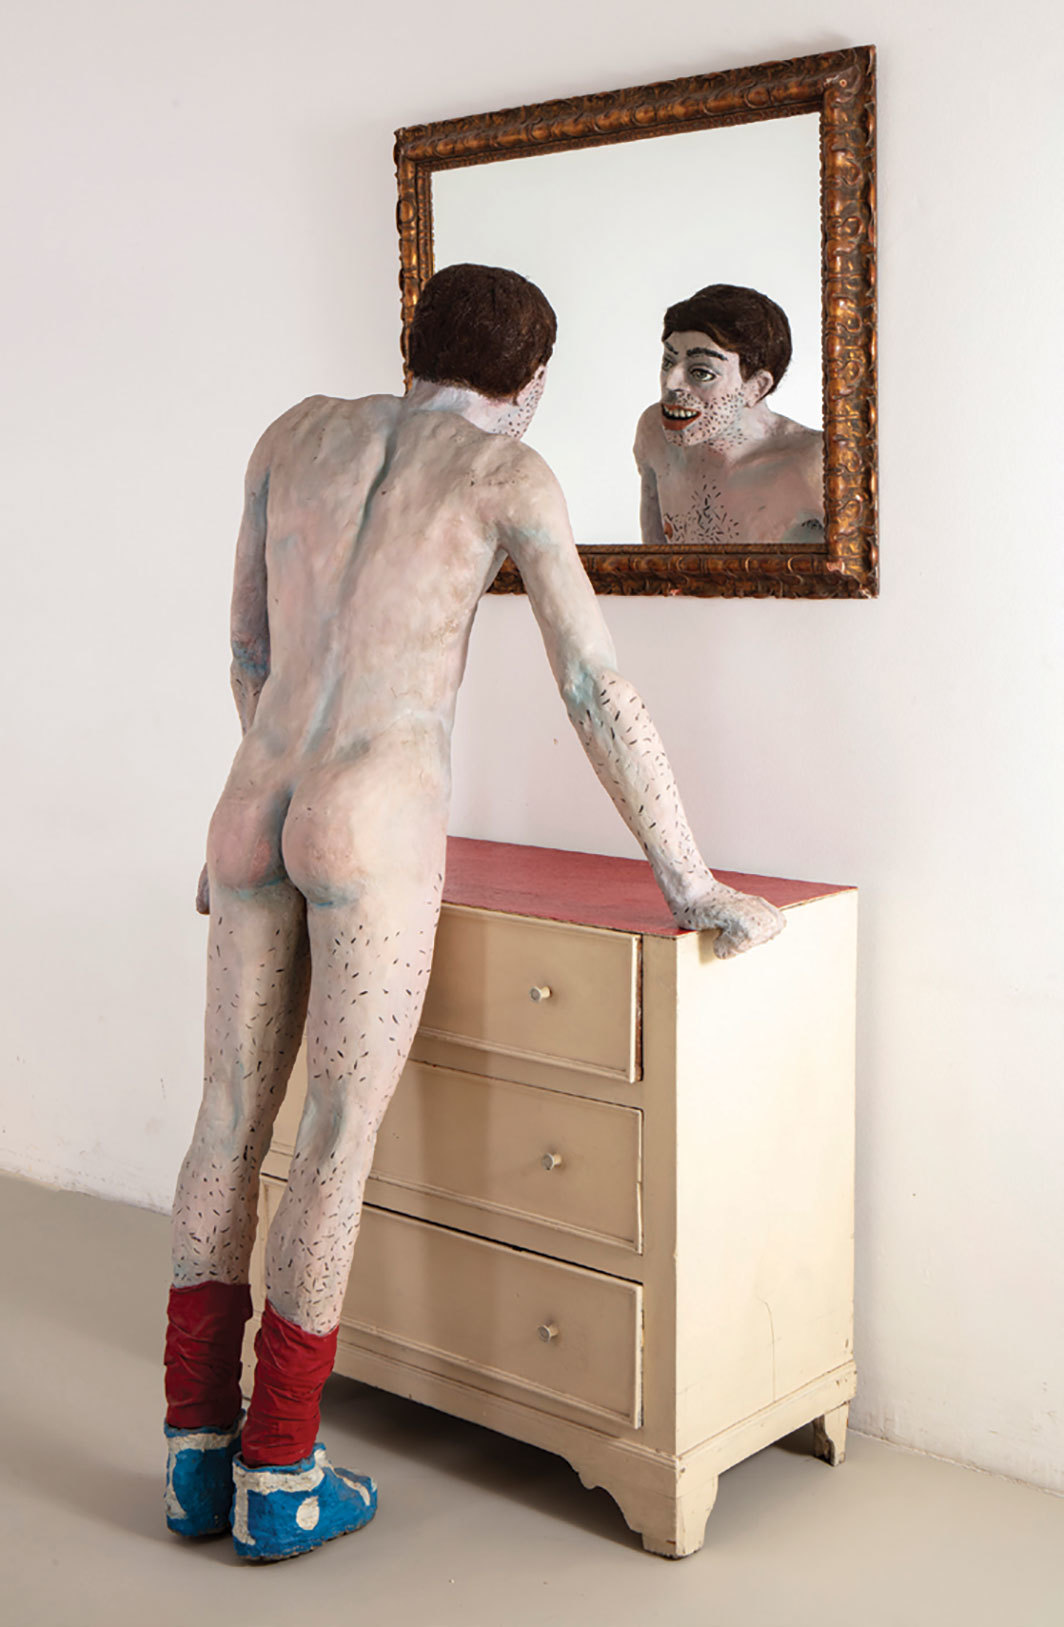 Pablo Suárez, Narciso de Mataderos (Narcissus of Mataderos), 1984–85 /1994, oil and enamel paint on plaster, dresser, mirror. Installation view. Photo: Gustavo Sosa Pinilla.